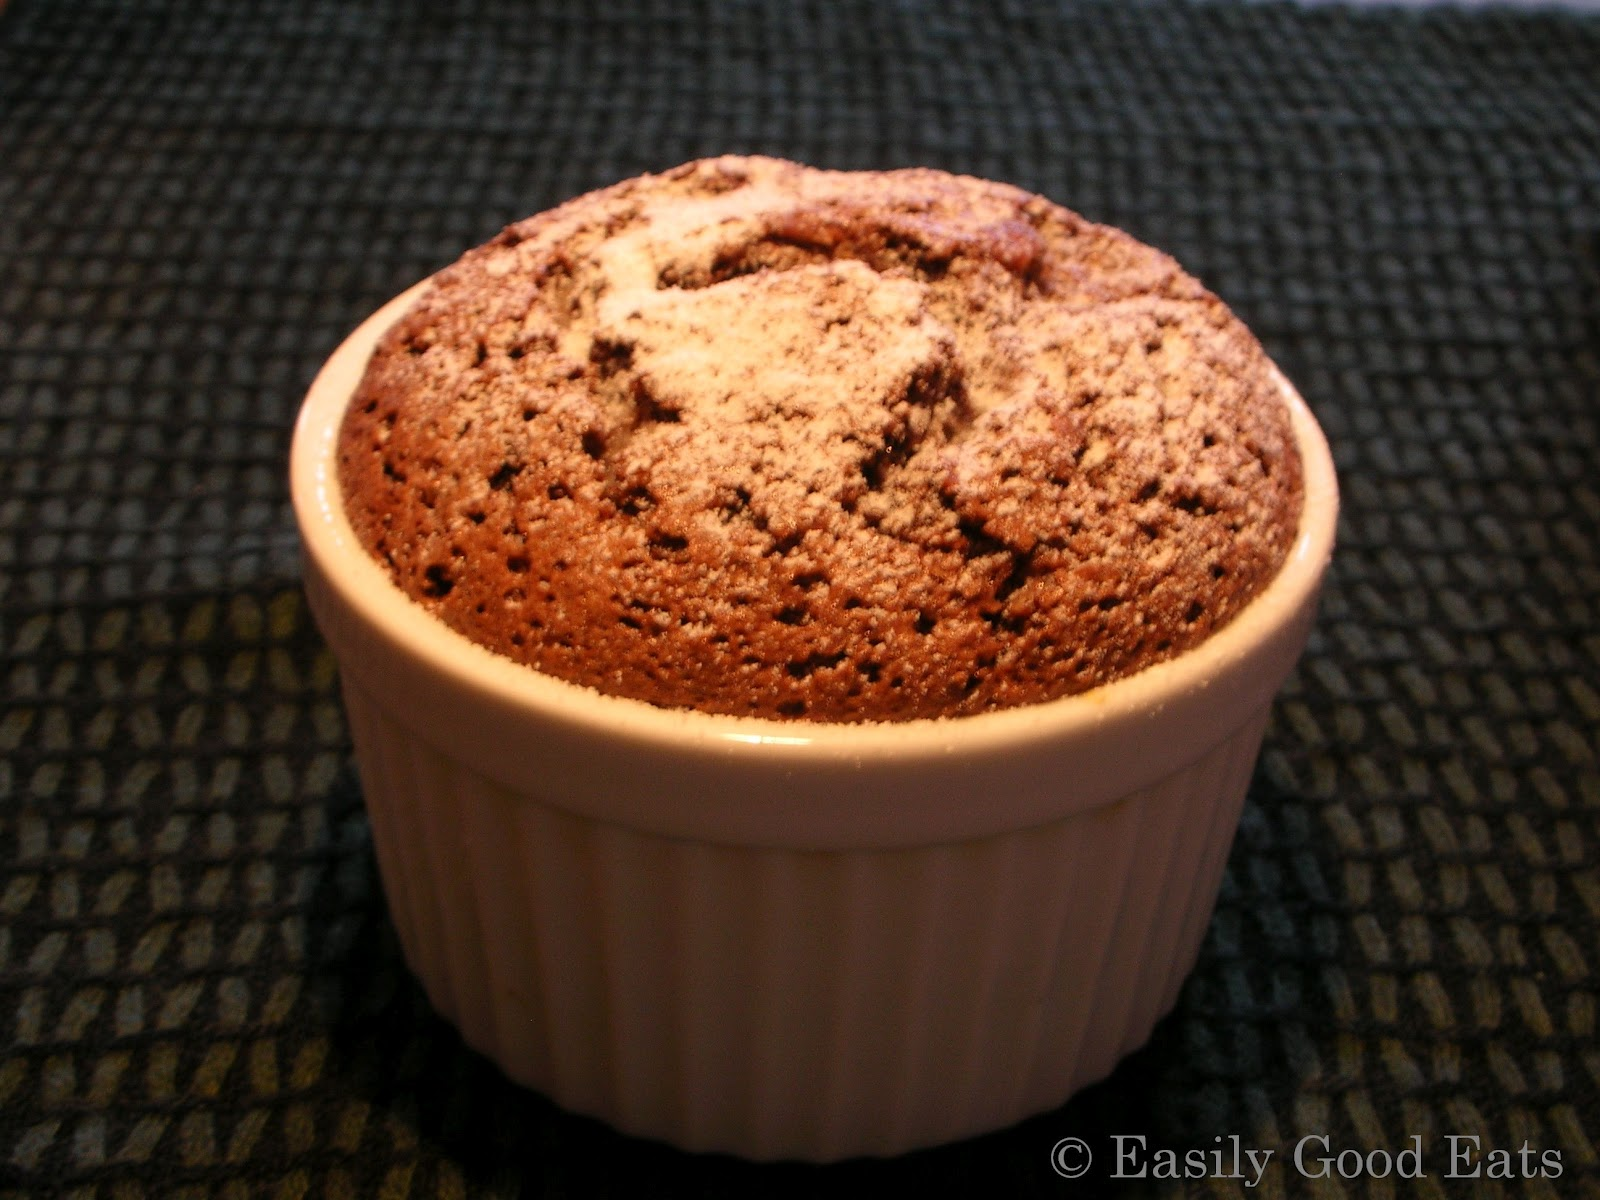 Easily Good Eats: Hot Mocha Fudge Cake Recipe